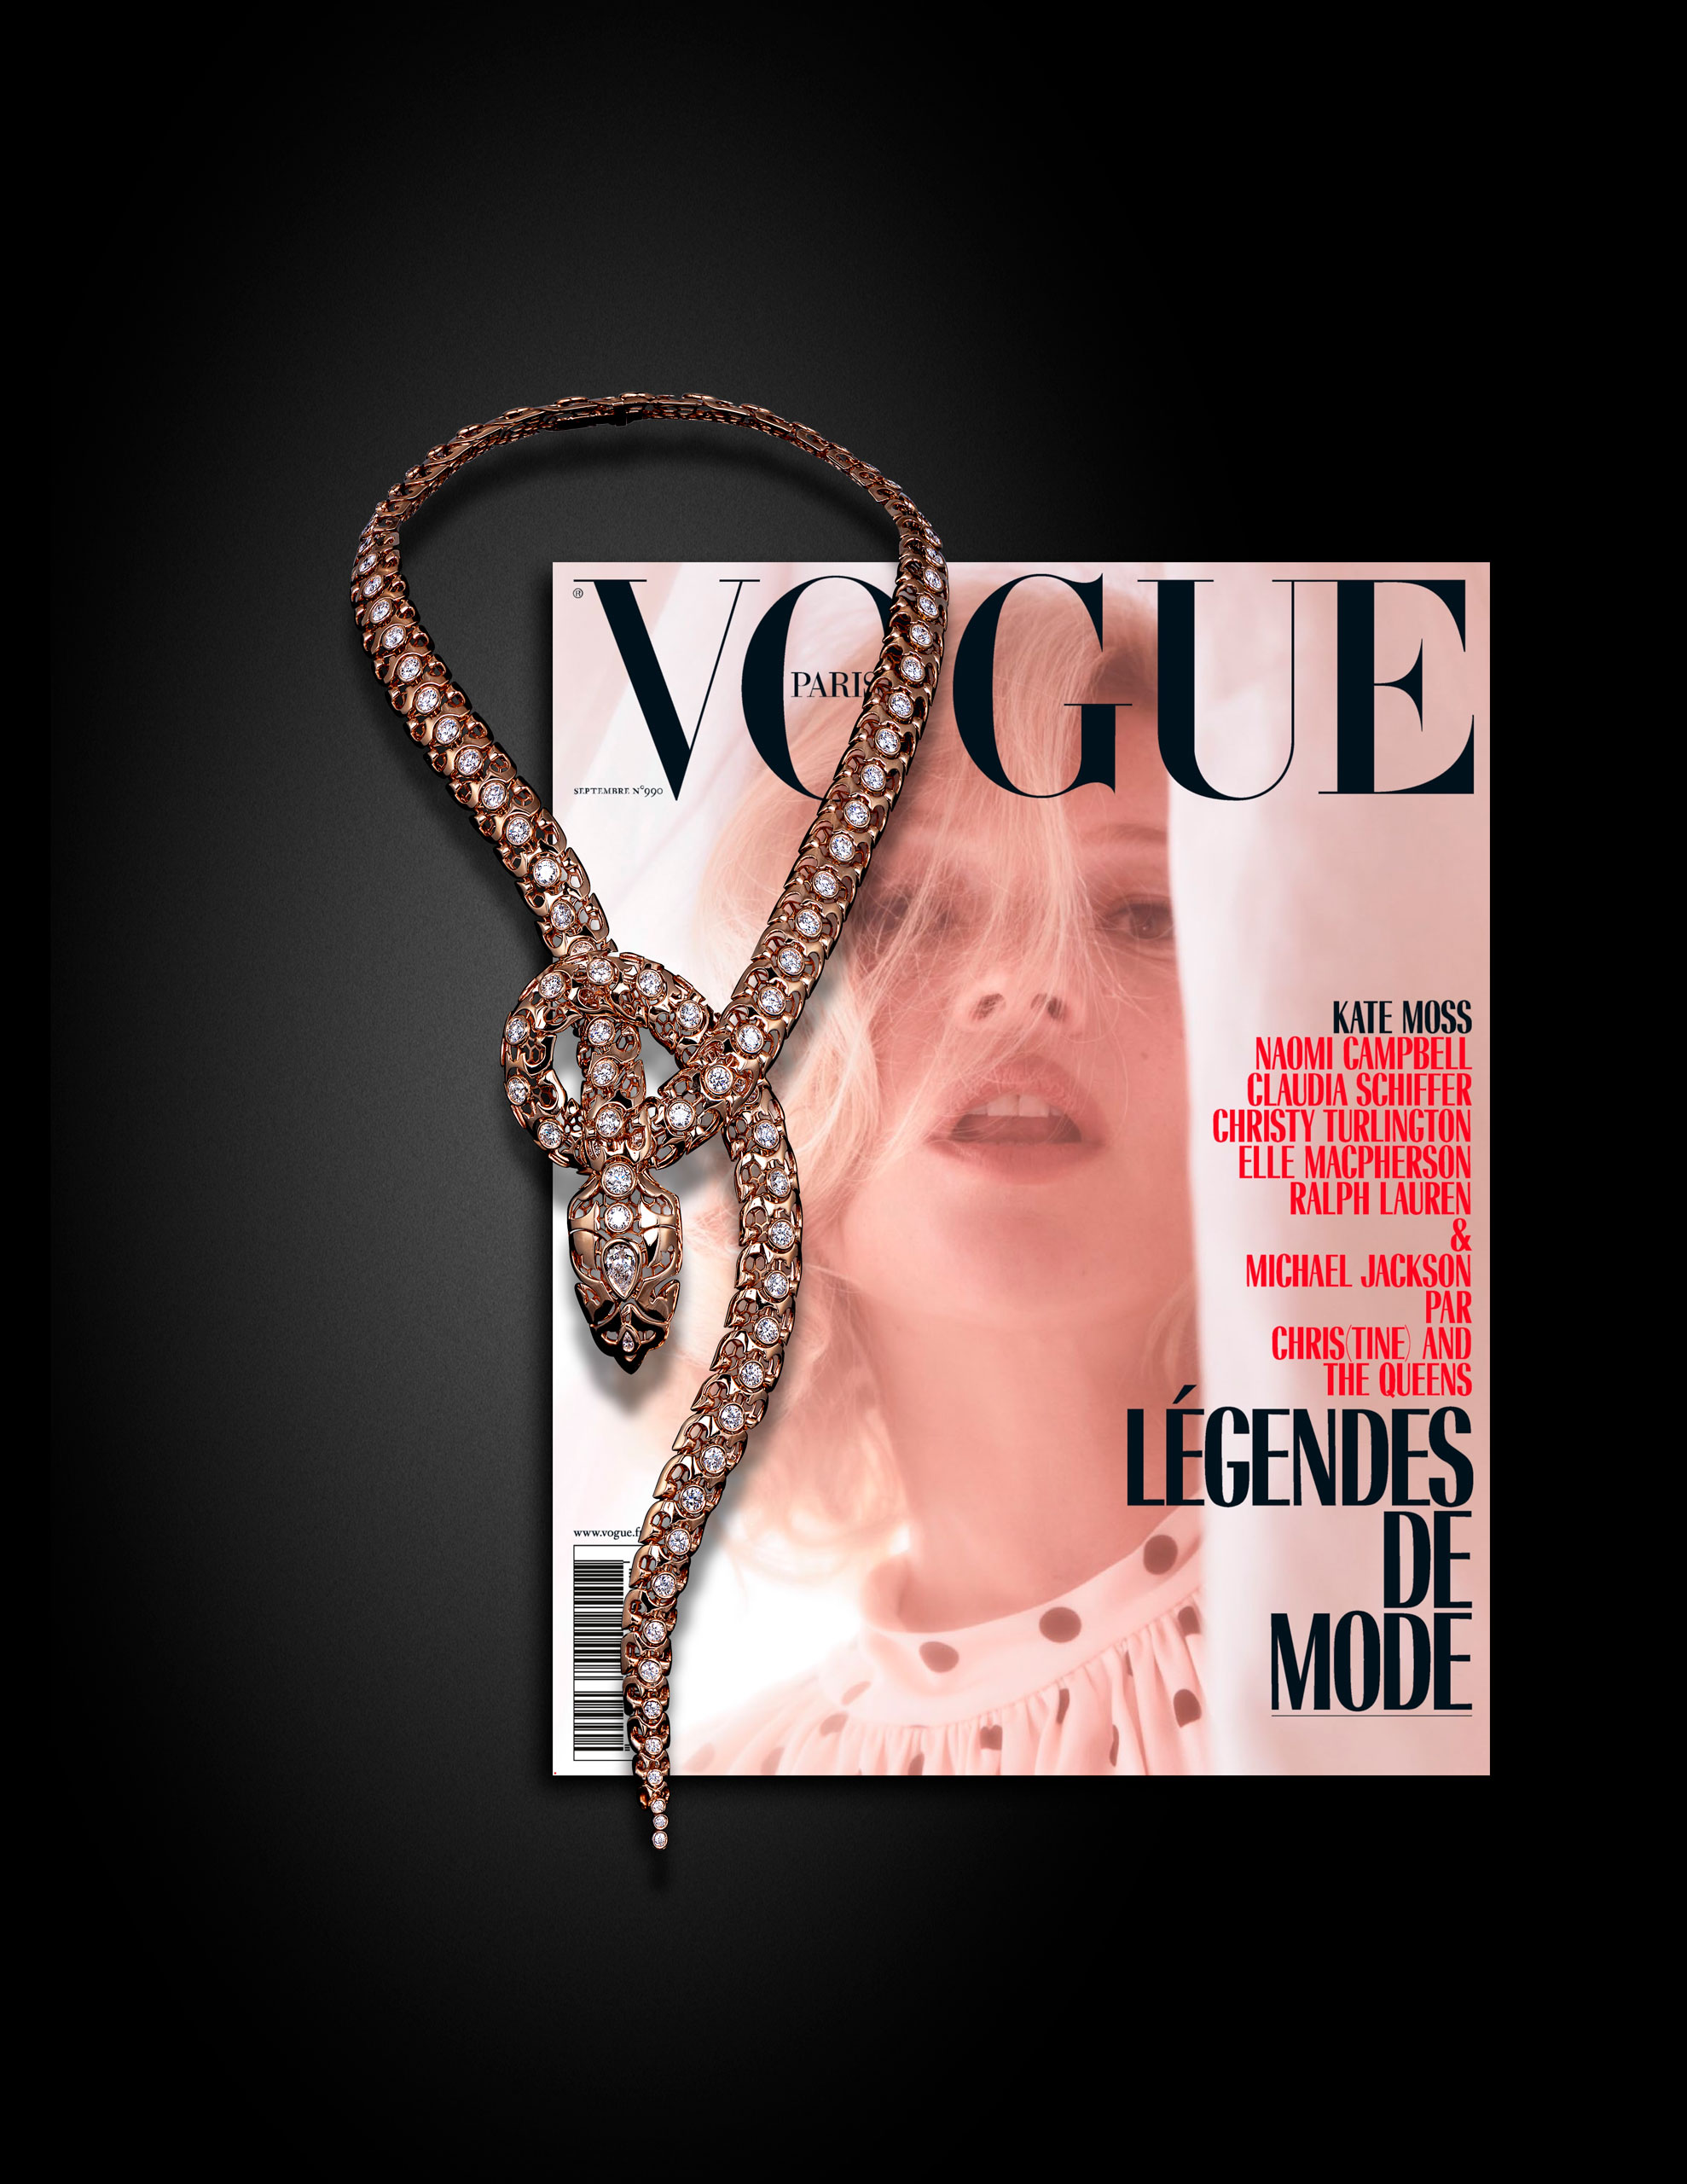 Photo of the pink gold serpentes necklace featured in the 2018 September edition N°990 of Vogue Paris